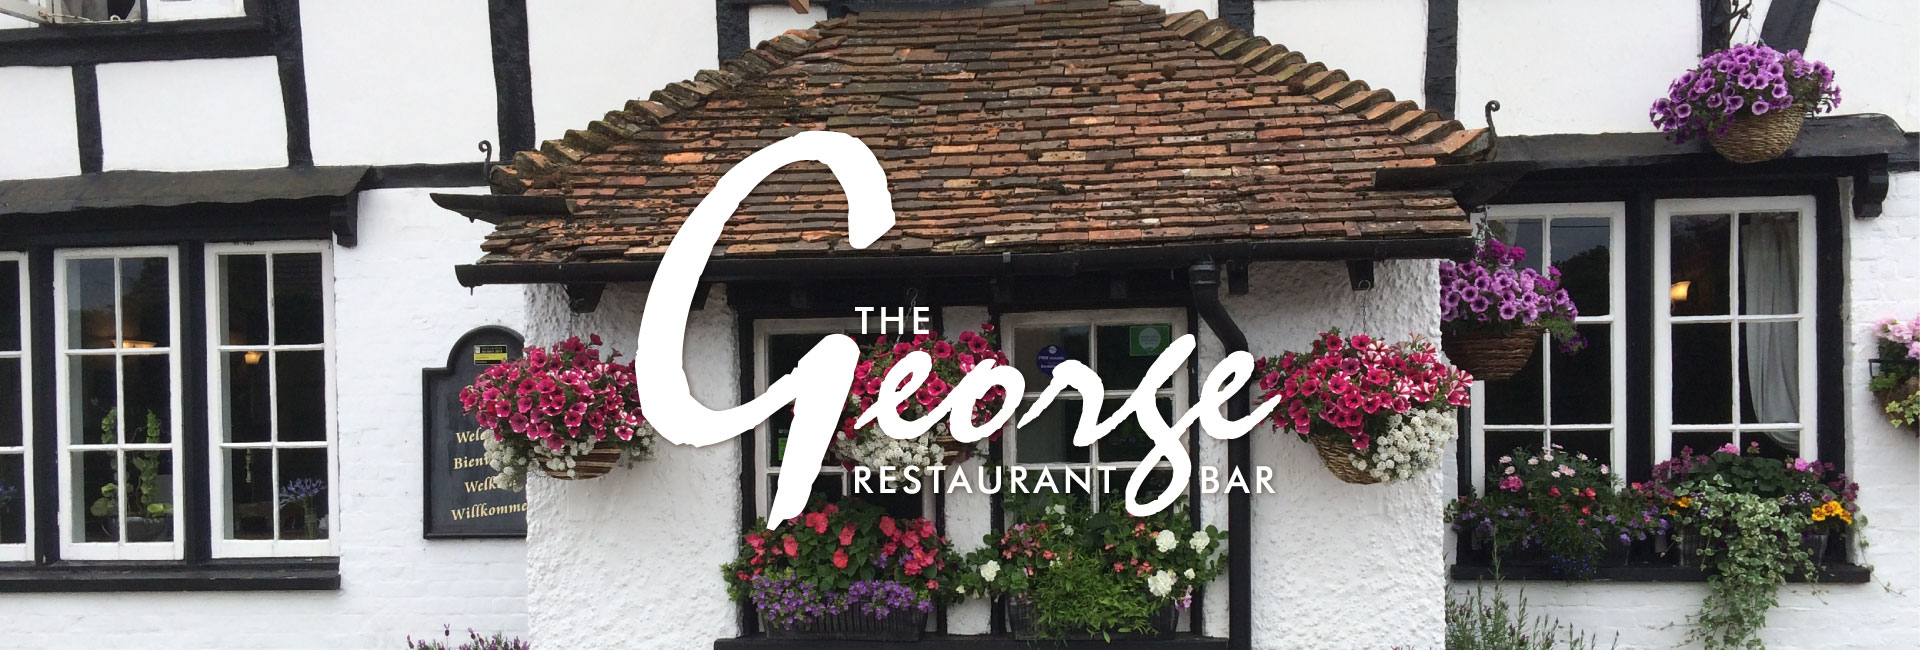 The George Restaurant & Bar Molash